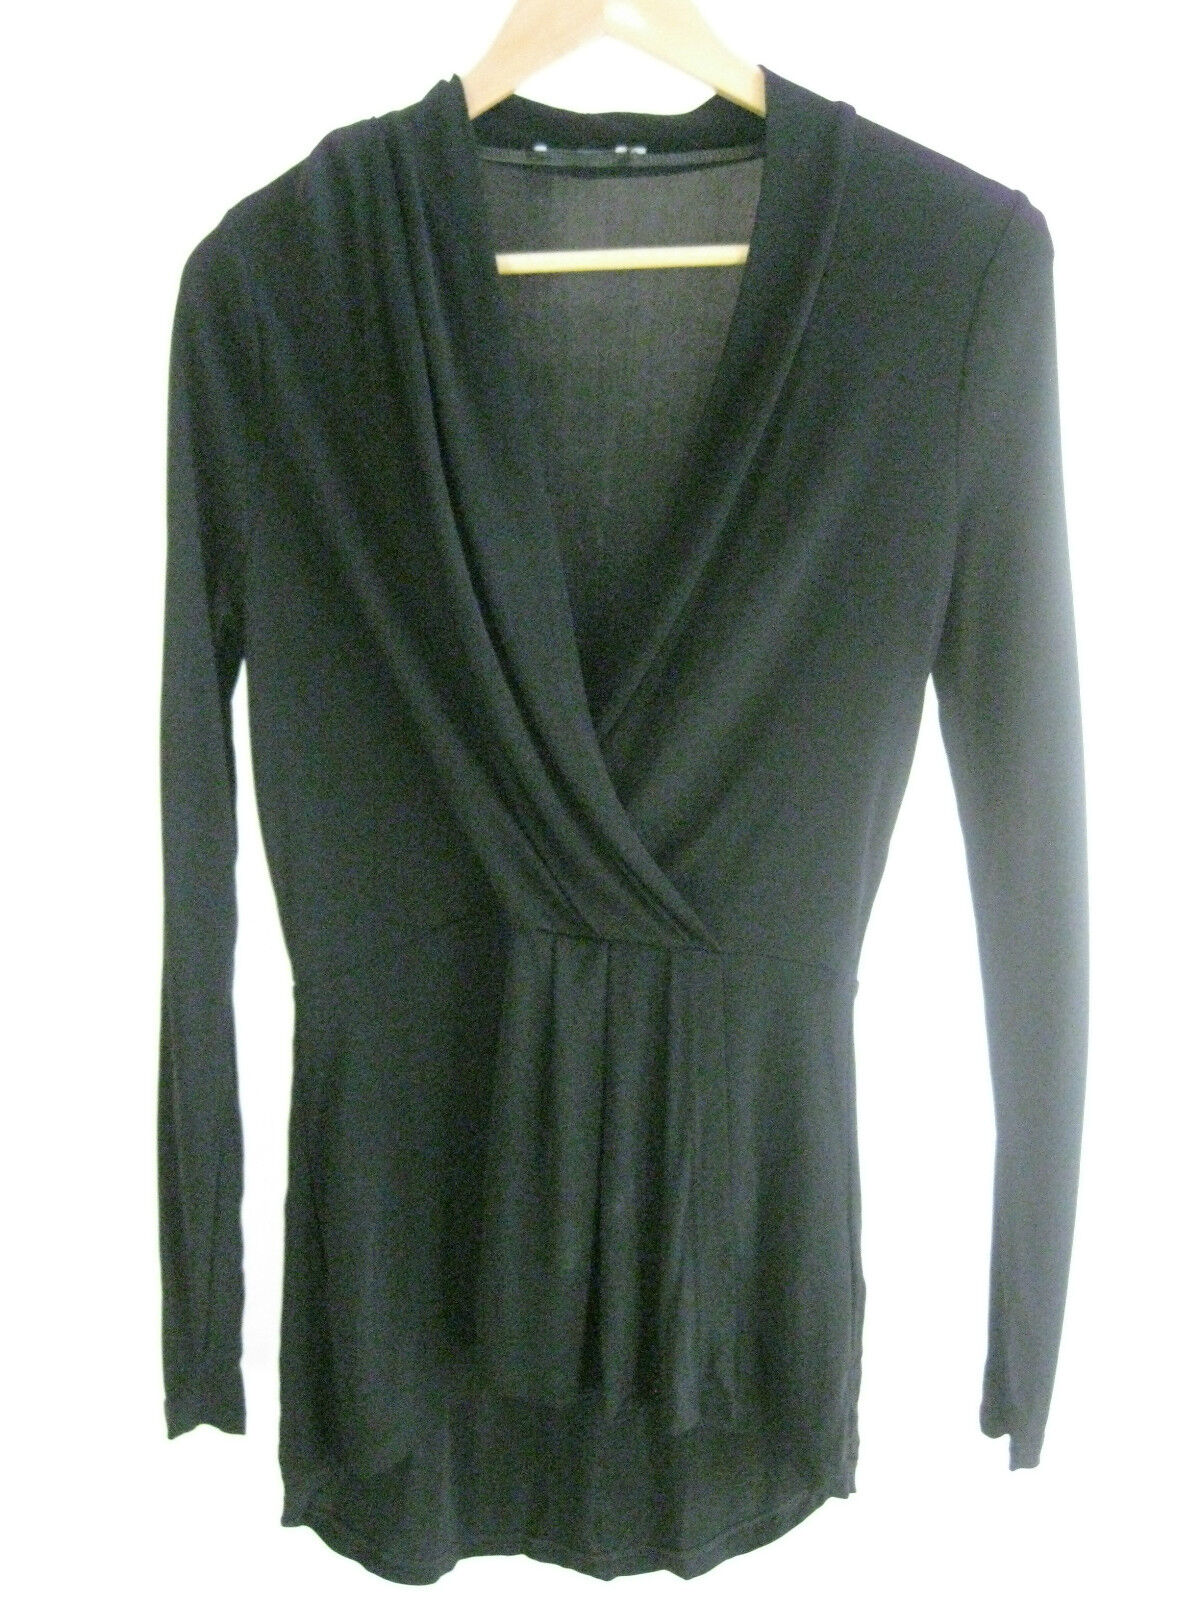 GORGEOUS SZ M (10) JUMPER BY THURLEY DESIGNER